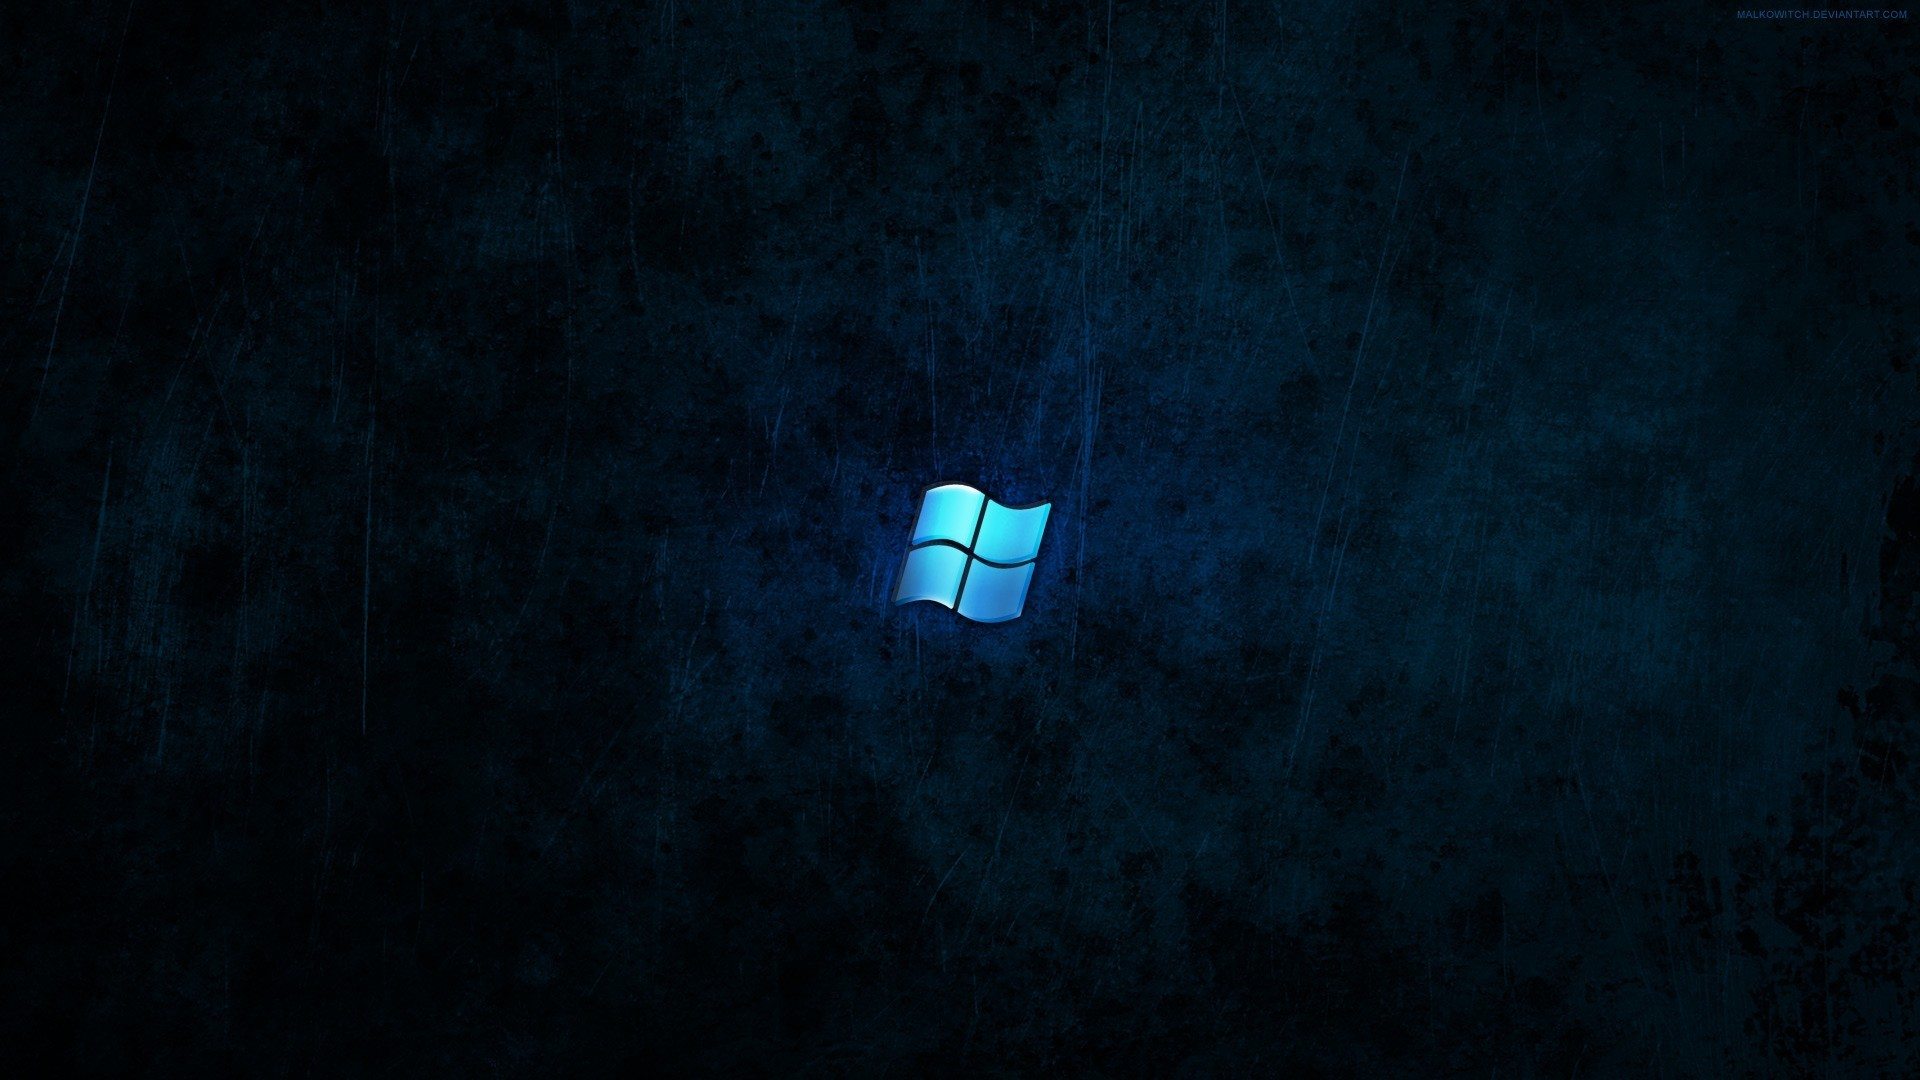 Windows Wallpapers Hd 80 Background Pictures